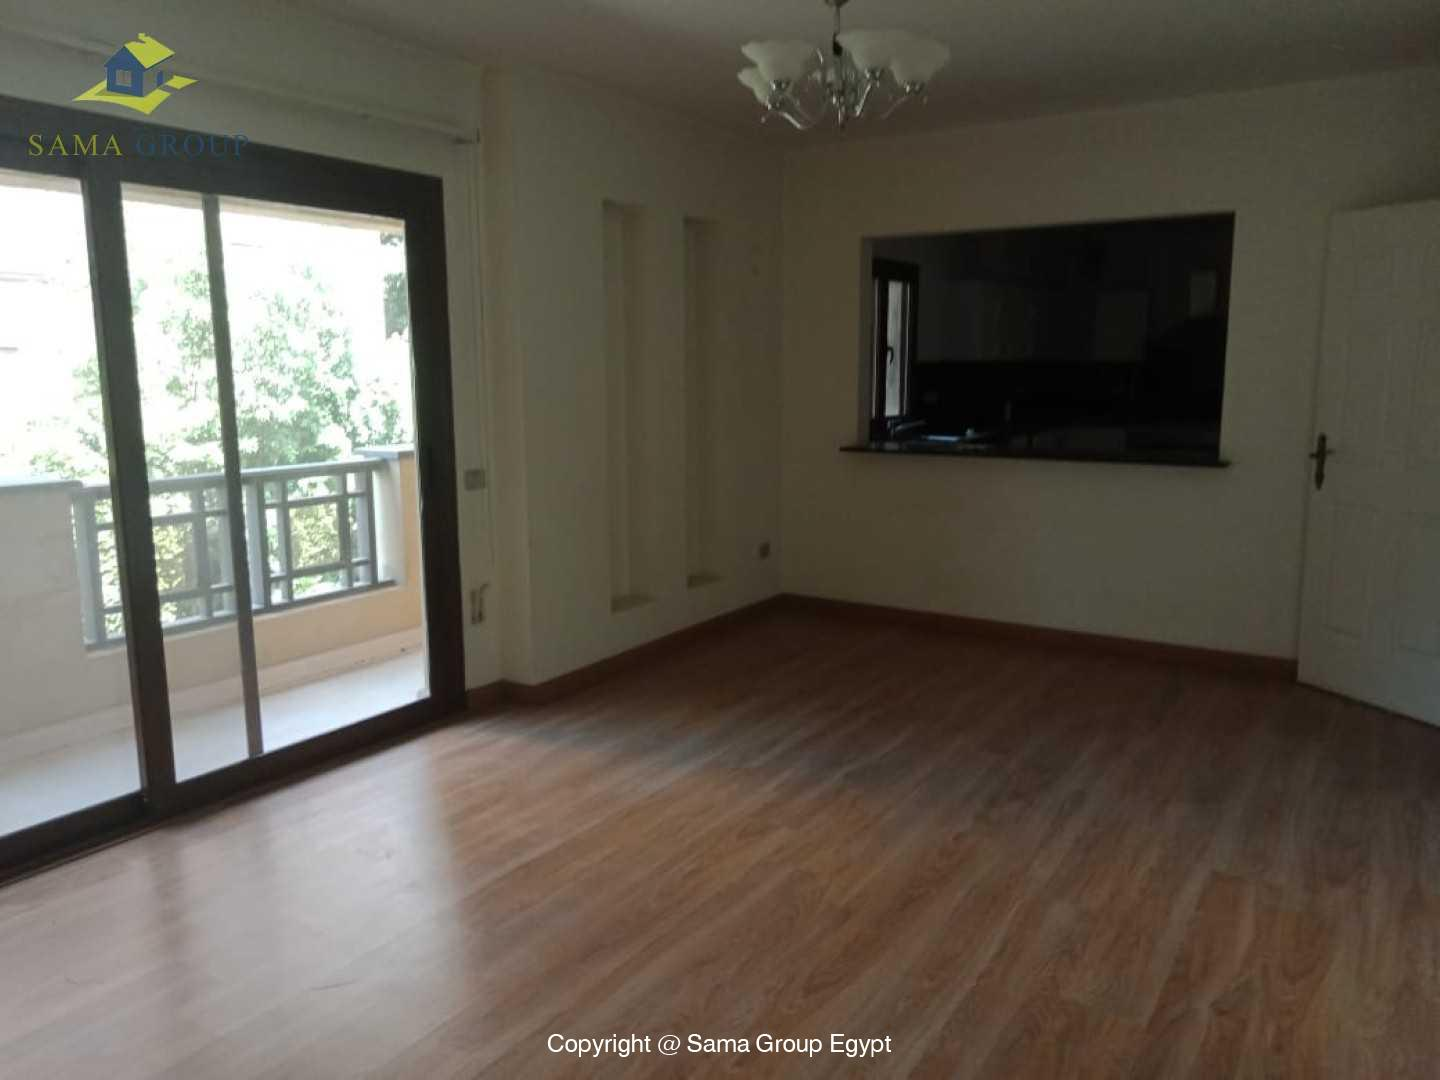 Semi Furnished Apartment For Rent In Maadi Sarayat,Semi furnished,Apartment NO #20